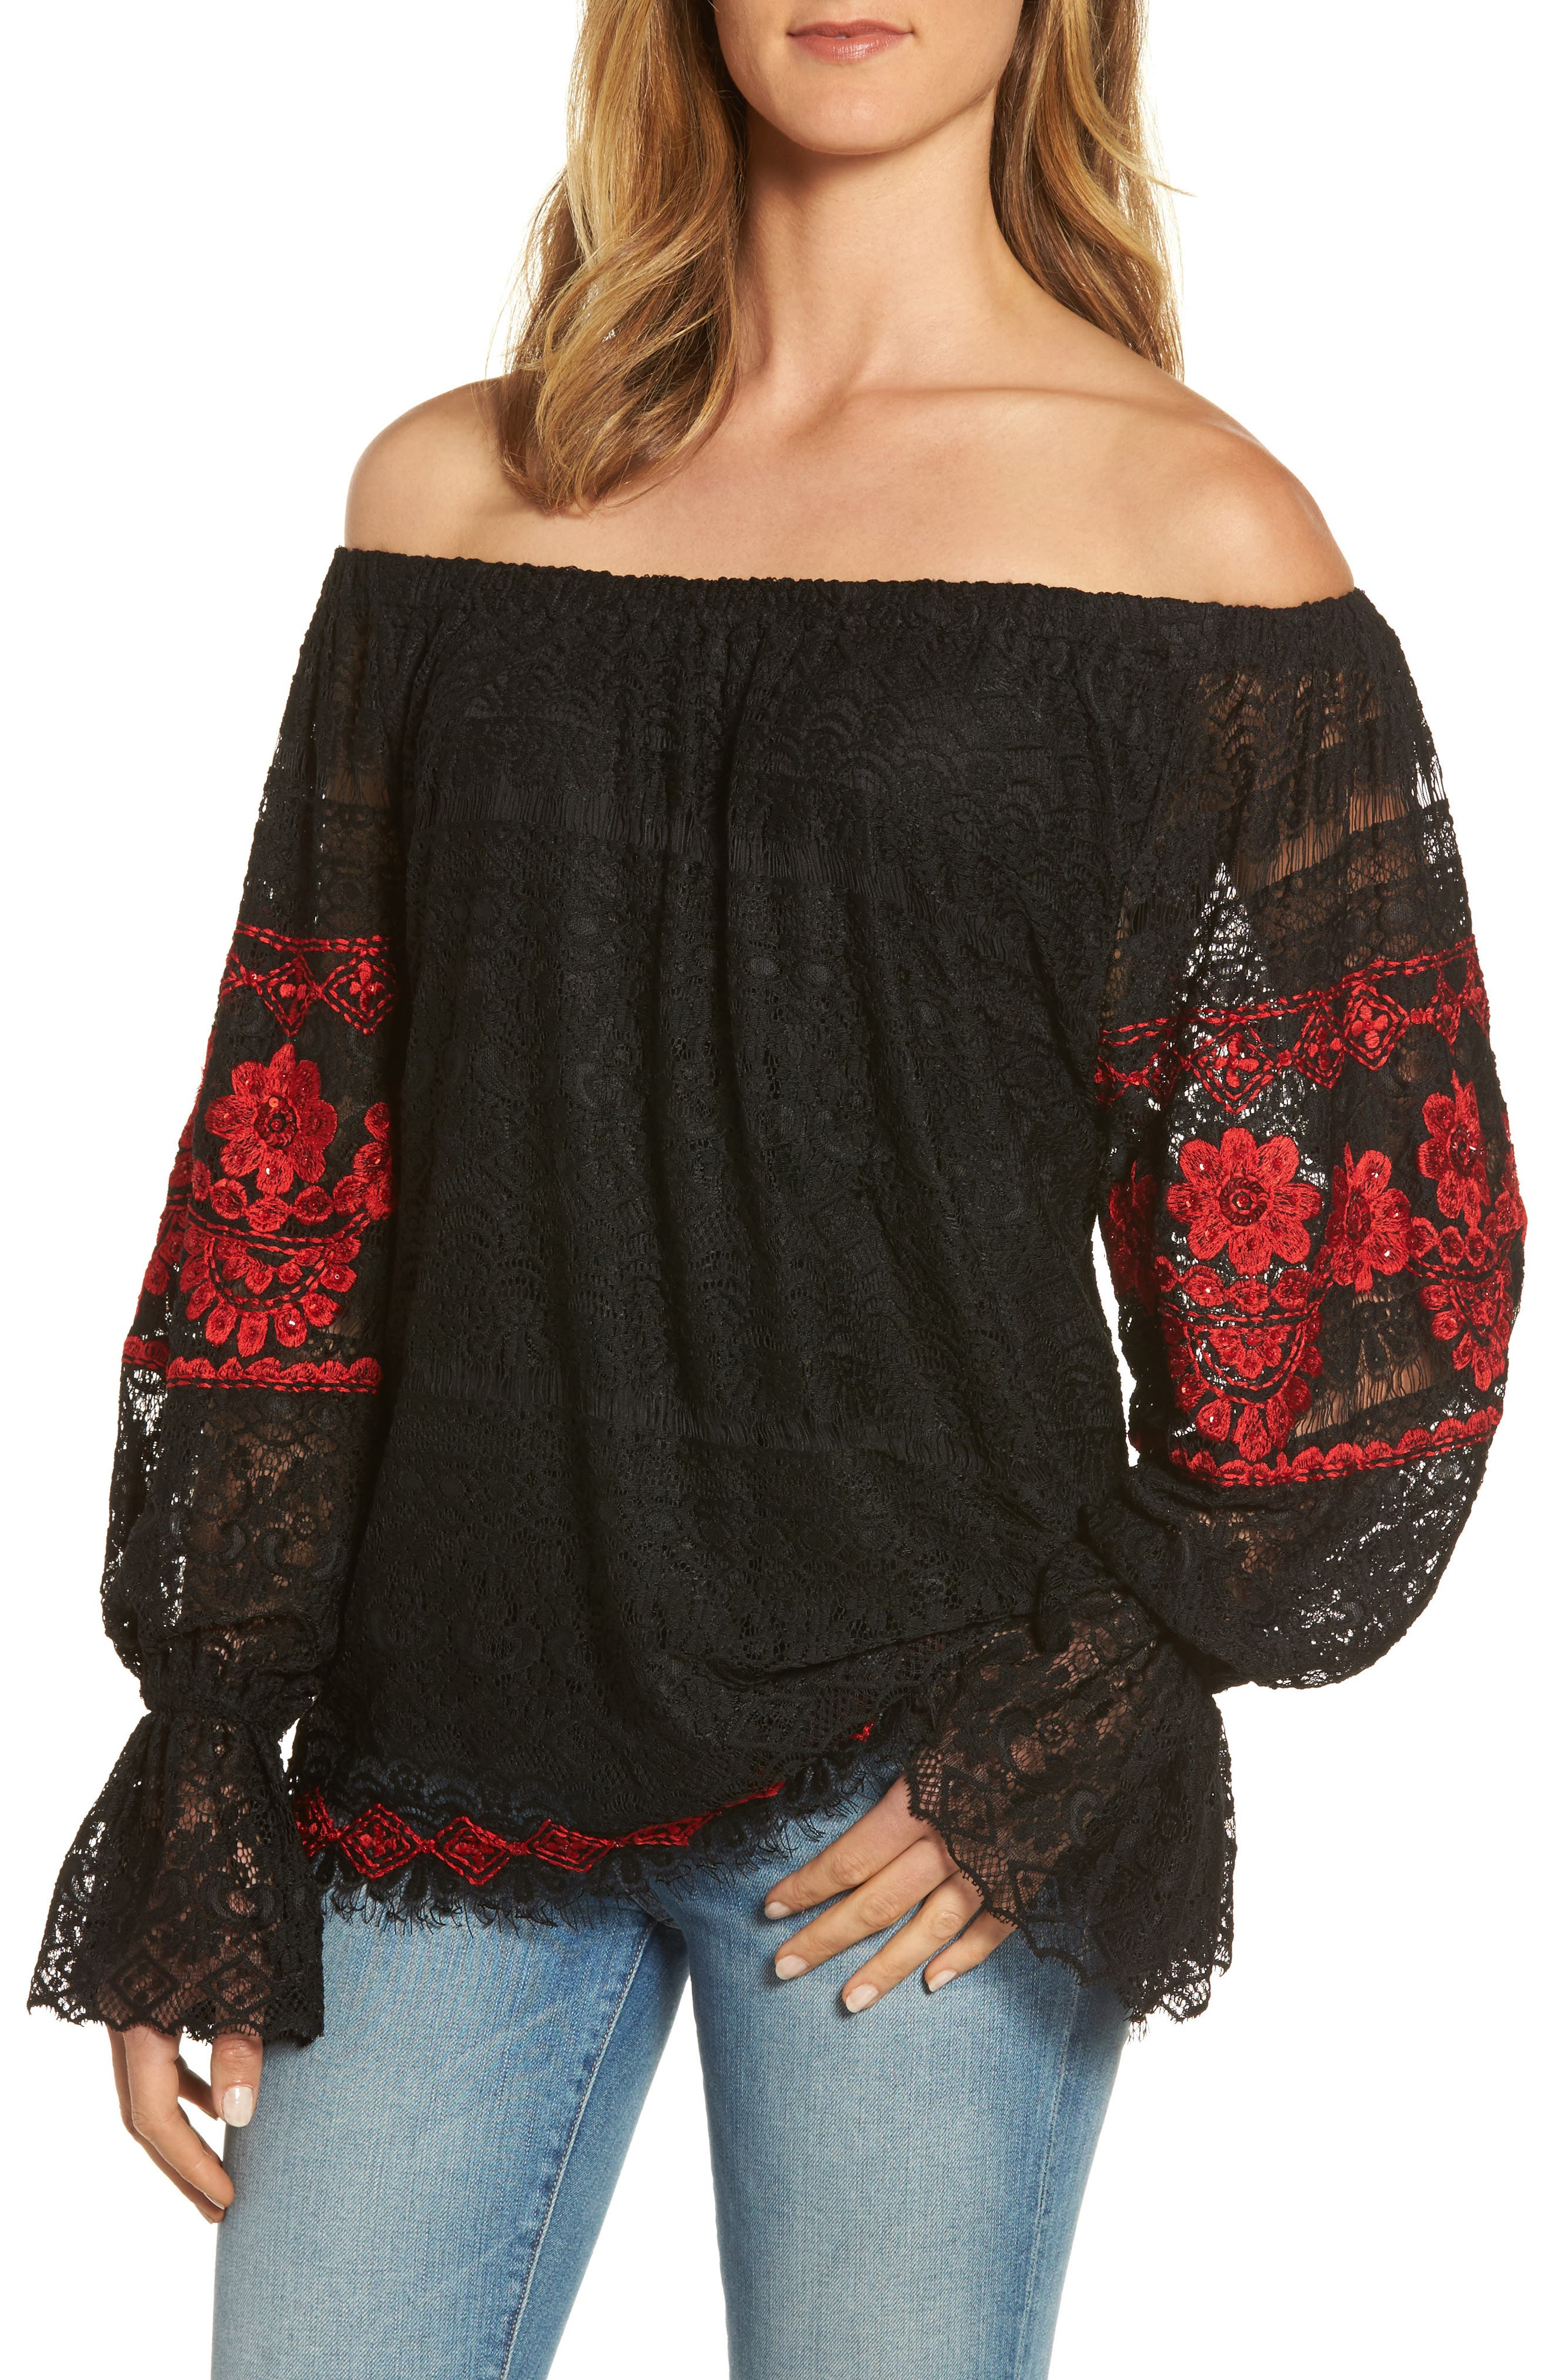 Clare Off the Shoulder Lace Top,                         Main,                         color, 001